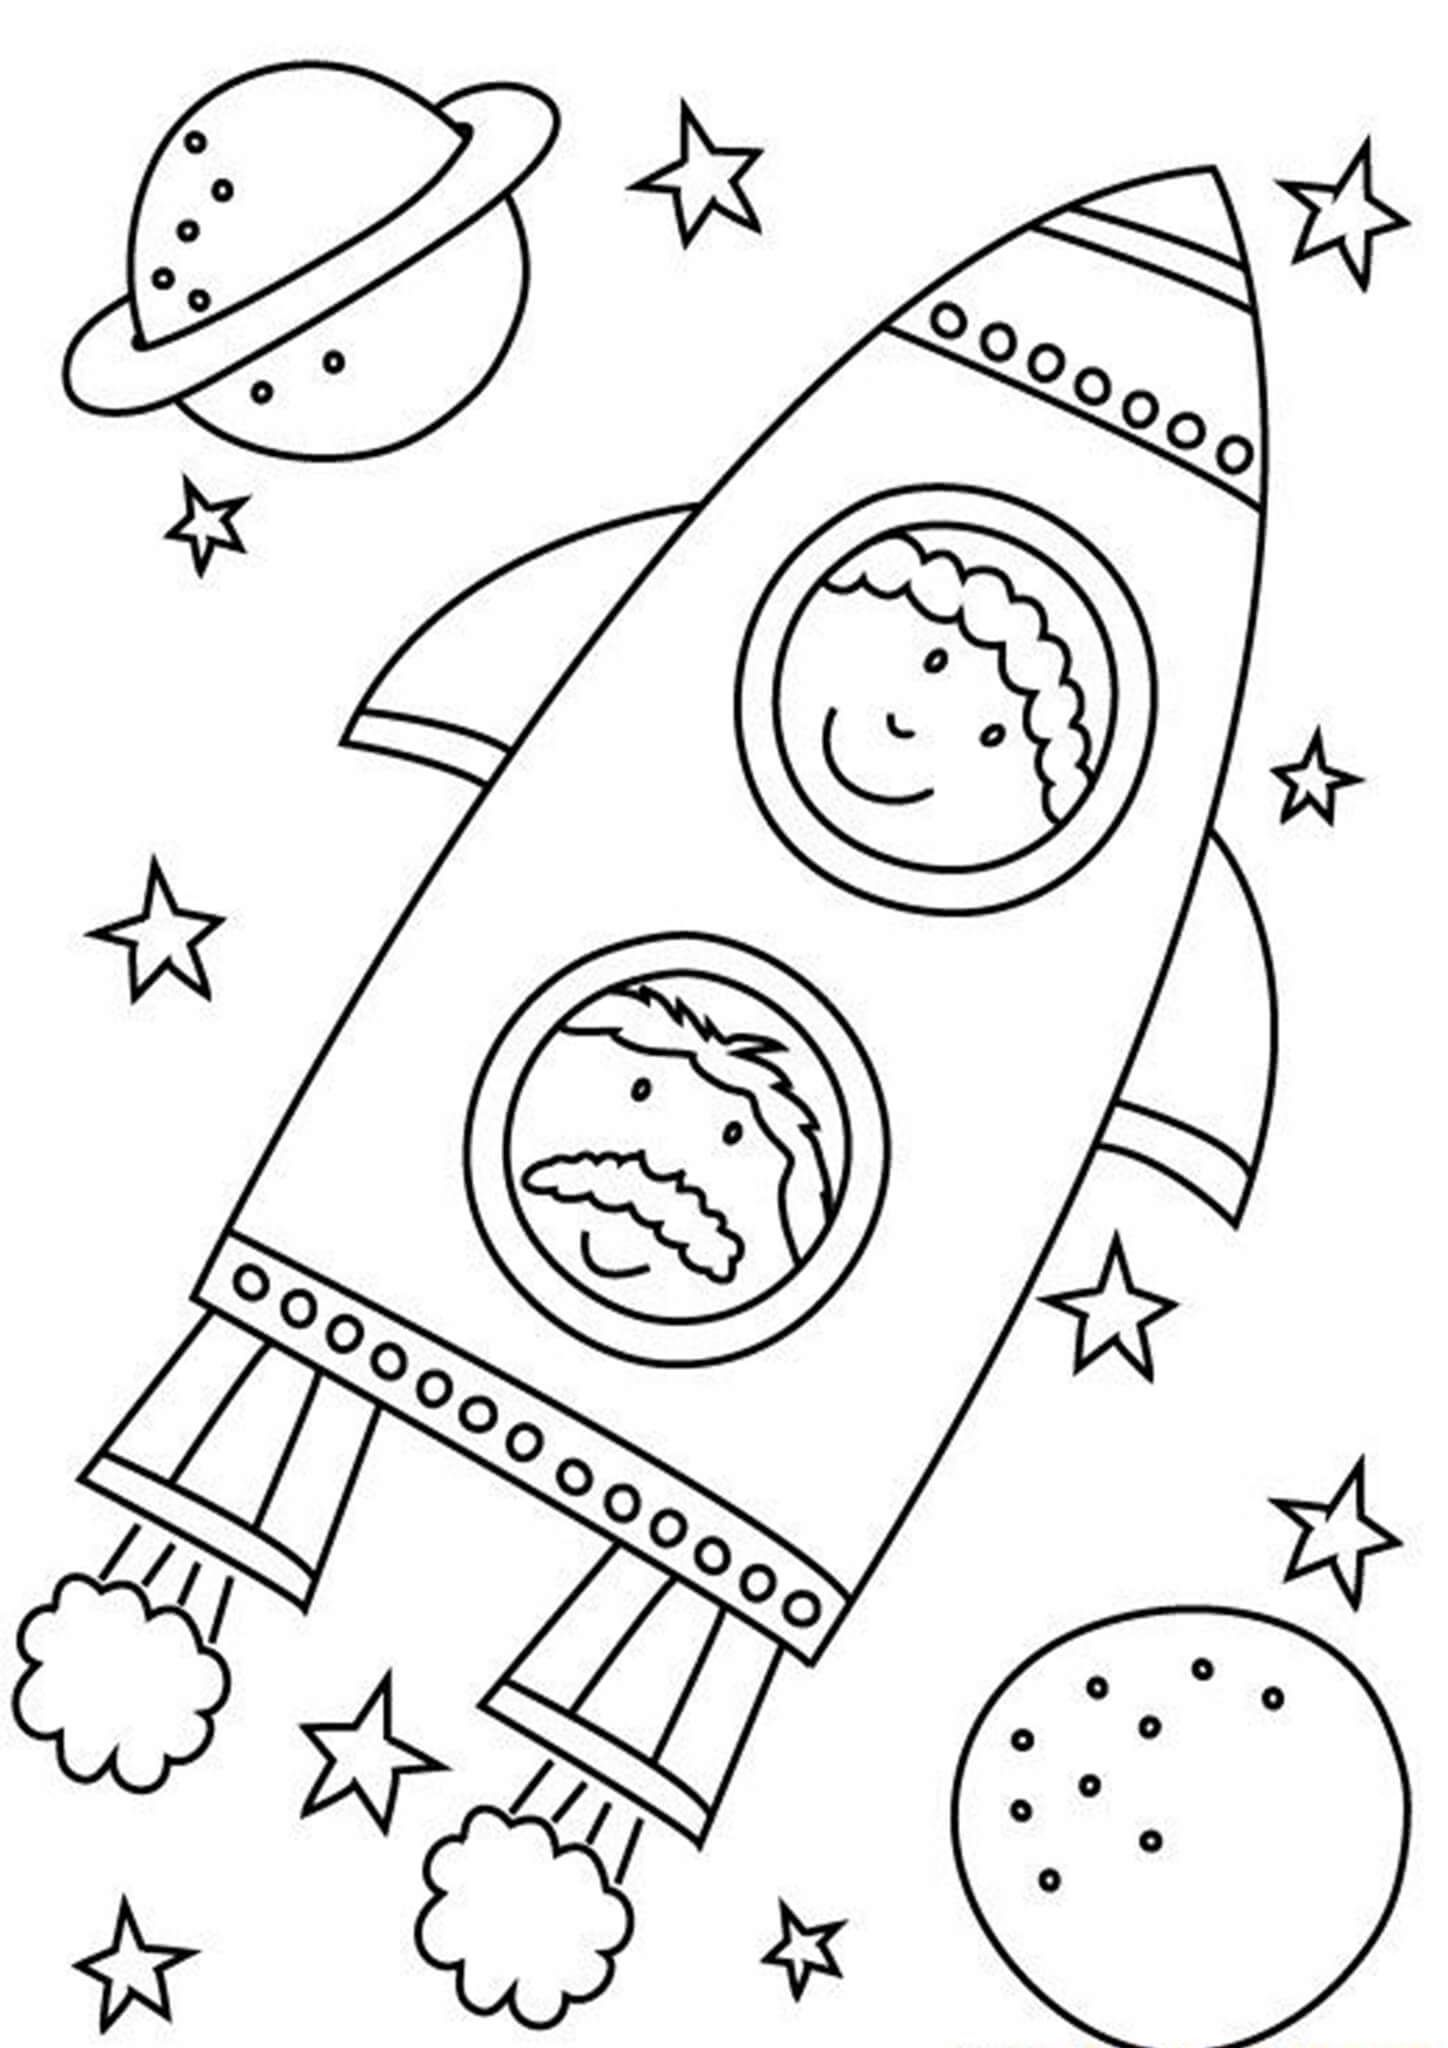 25 Inspiration Picture Of Train Coloring Page Entitlementtrap Com Train Coloring Pages Train Coloring Page Train Coloring Pages Free Printable